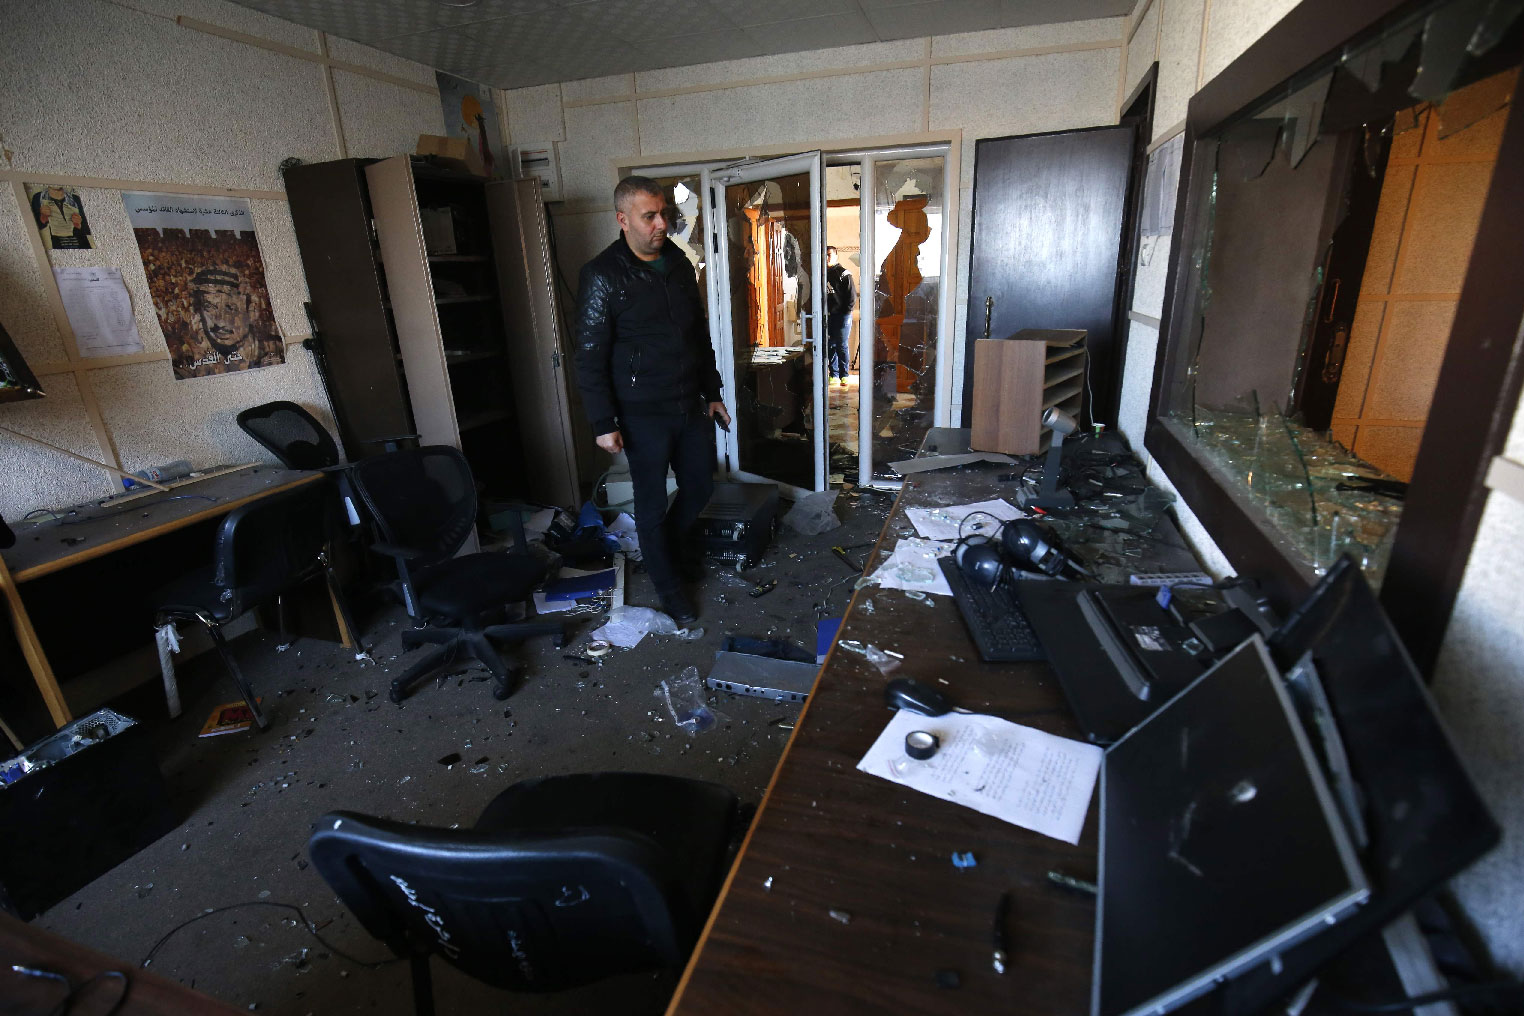 An employee of the Palestinian government-run radio and television stations inspects the damage at one of the studios on January 4, 2019, after armed men reportedly raided the building in Gaza City.